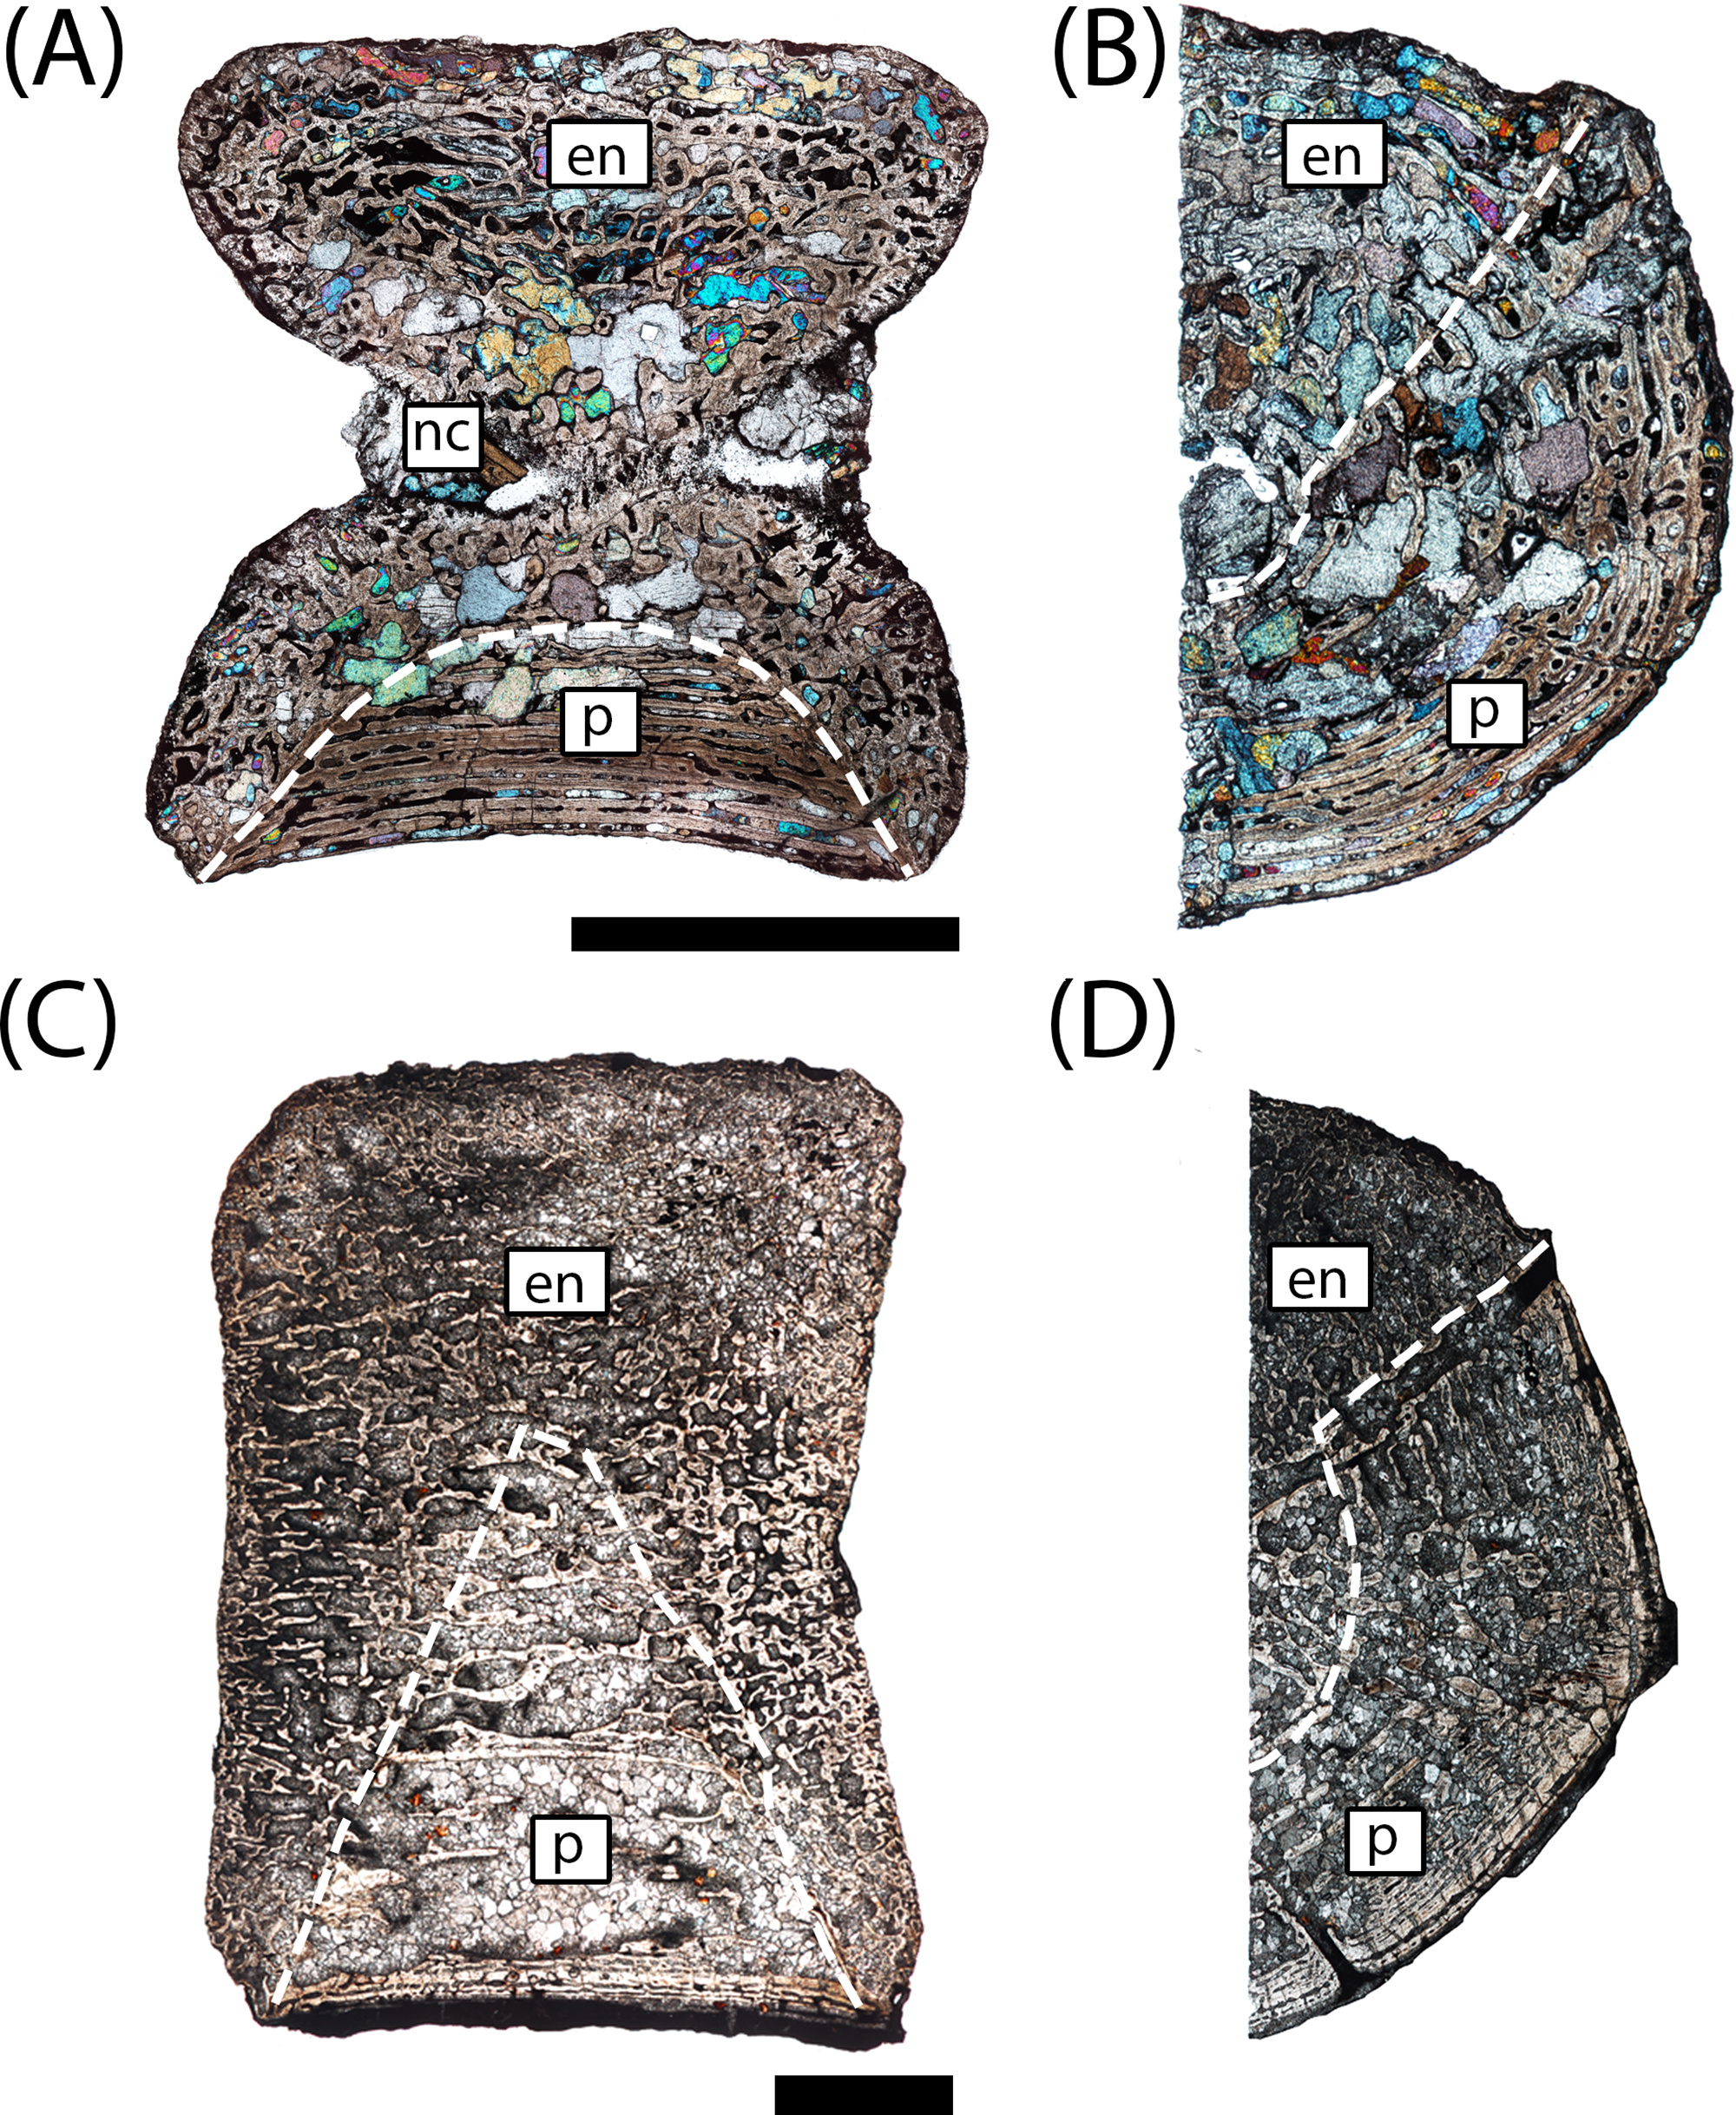 Microanatomy and paleohistology of the intercentra of North